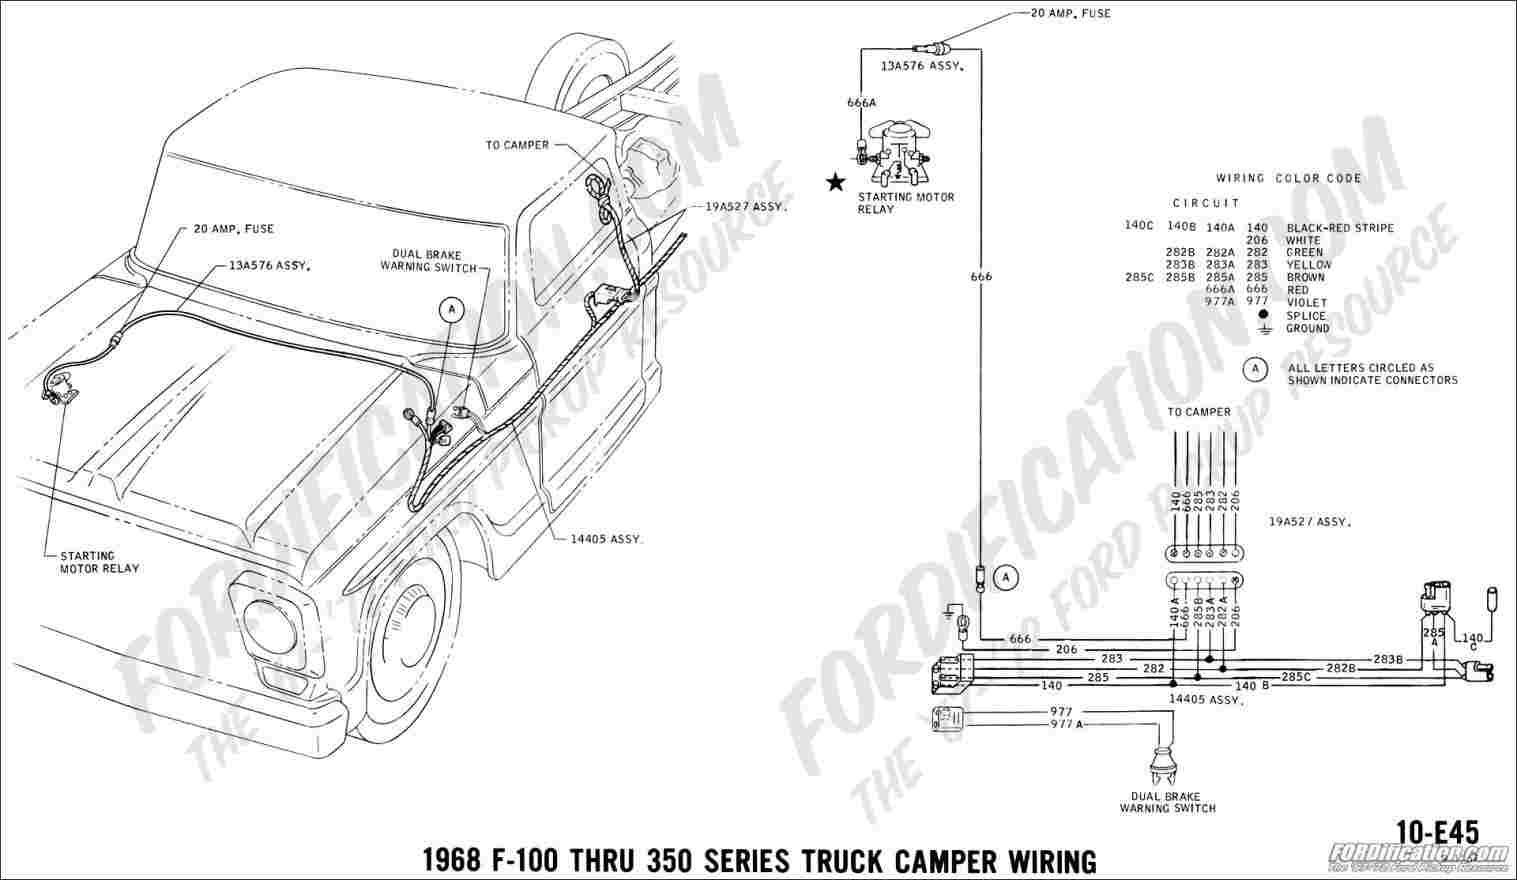 Eagle Trailer Wiring Diagram | Wiring Diagram - Trailer Wiring Diagram Ireland